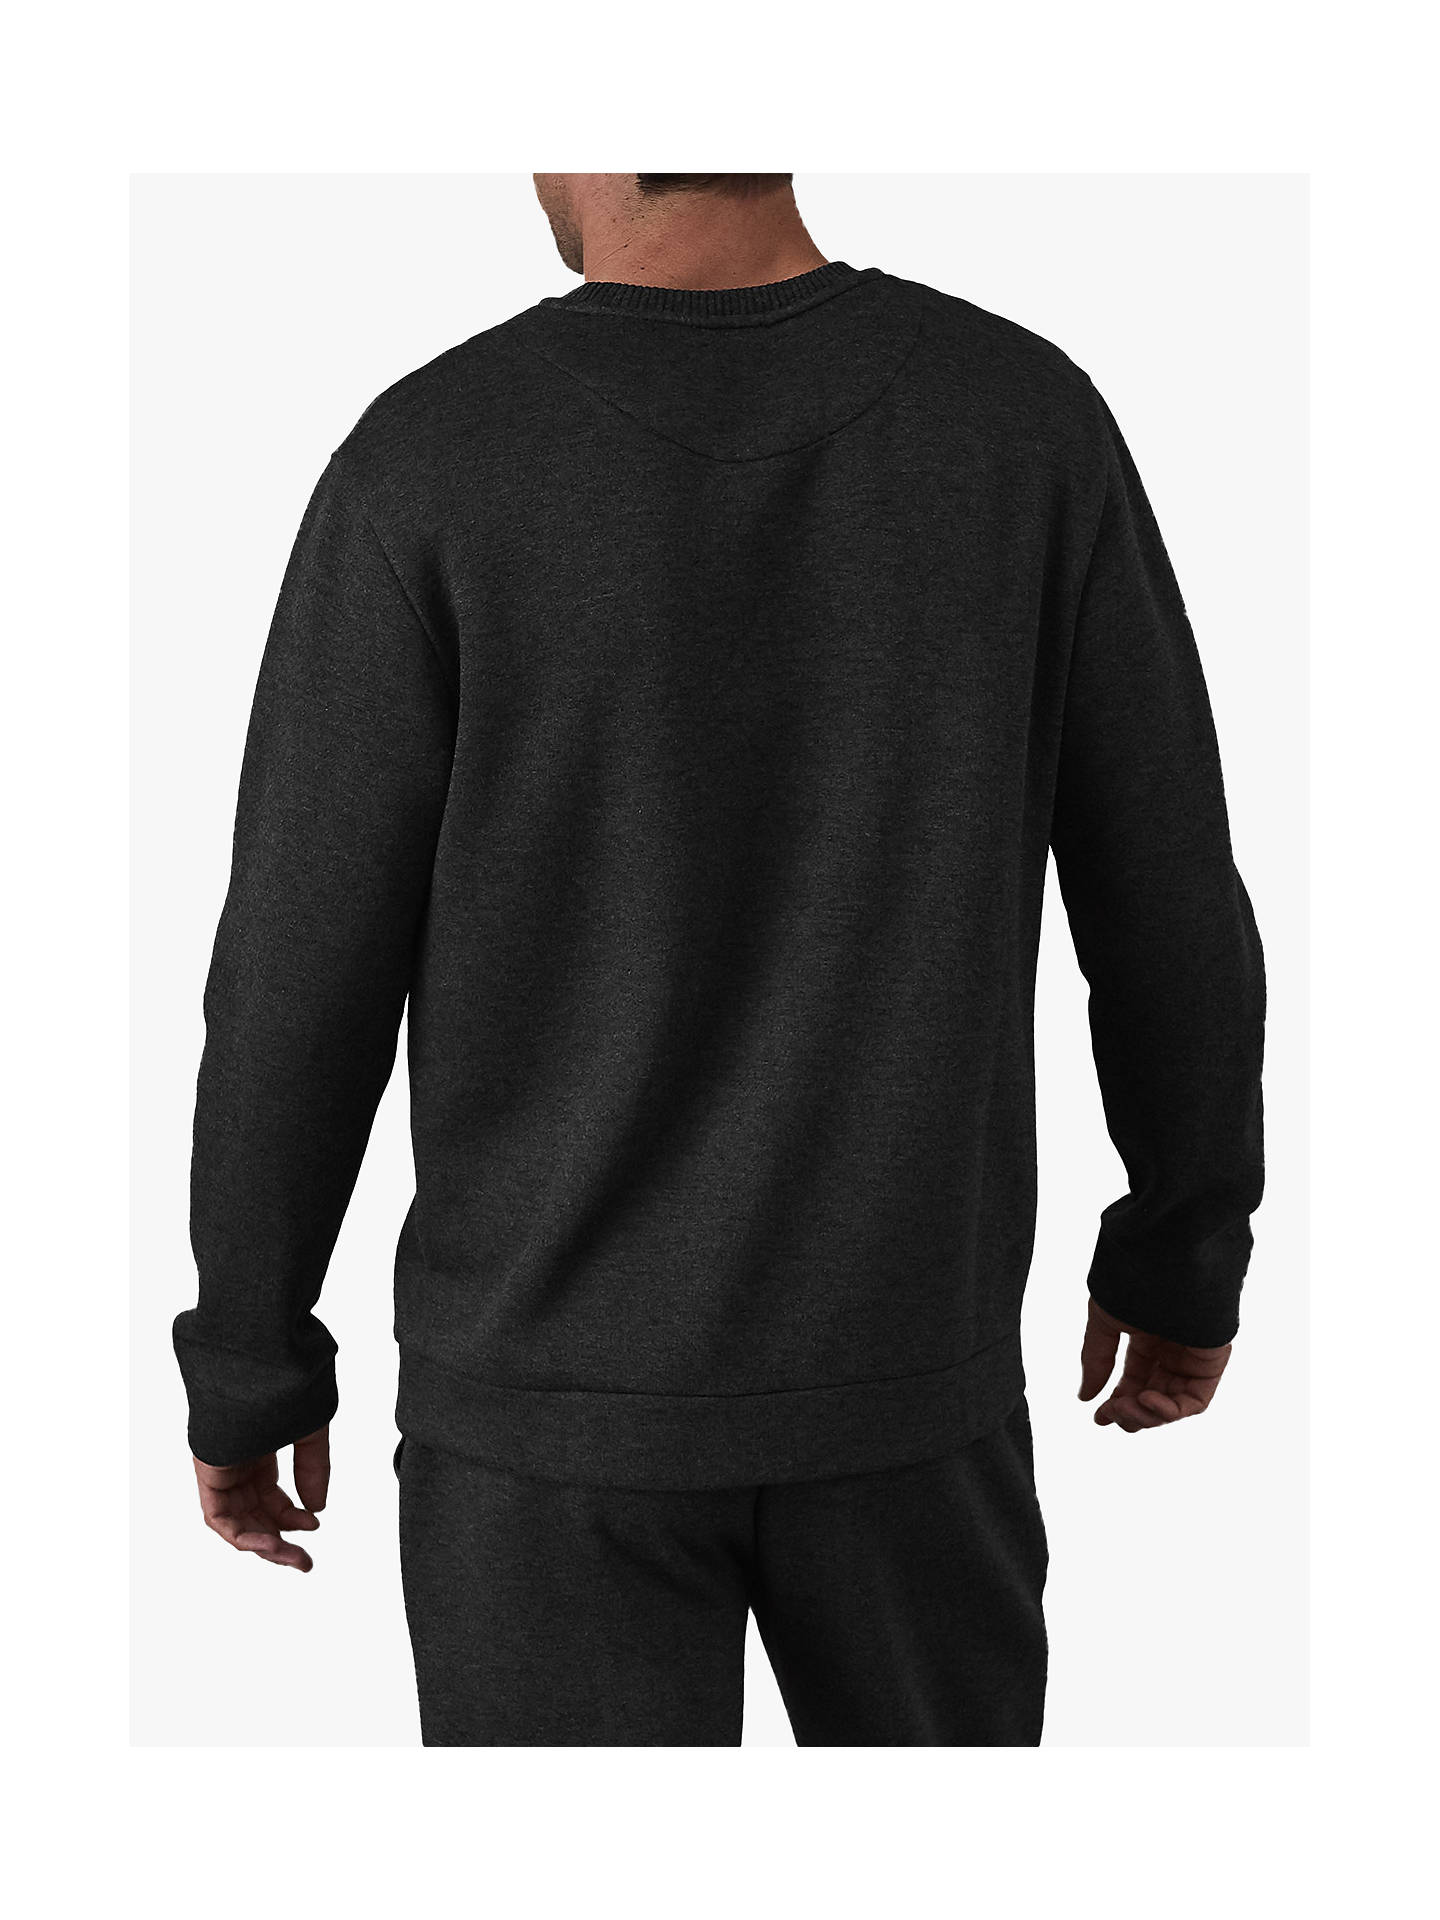 BuyReiss Hatton Knitted Sweatshirt, Charcoal, S Online at johnlewis.com